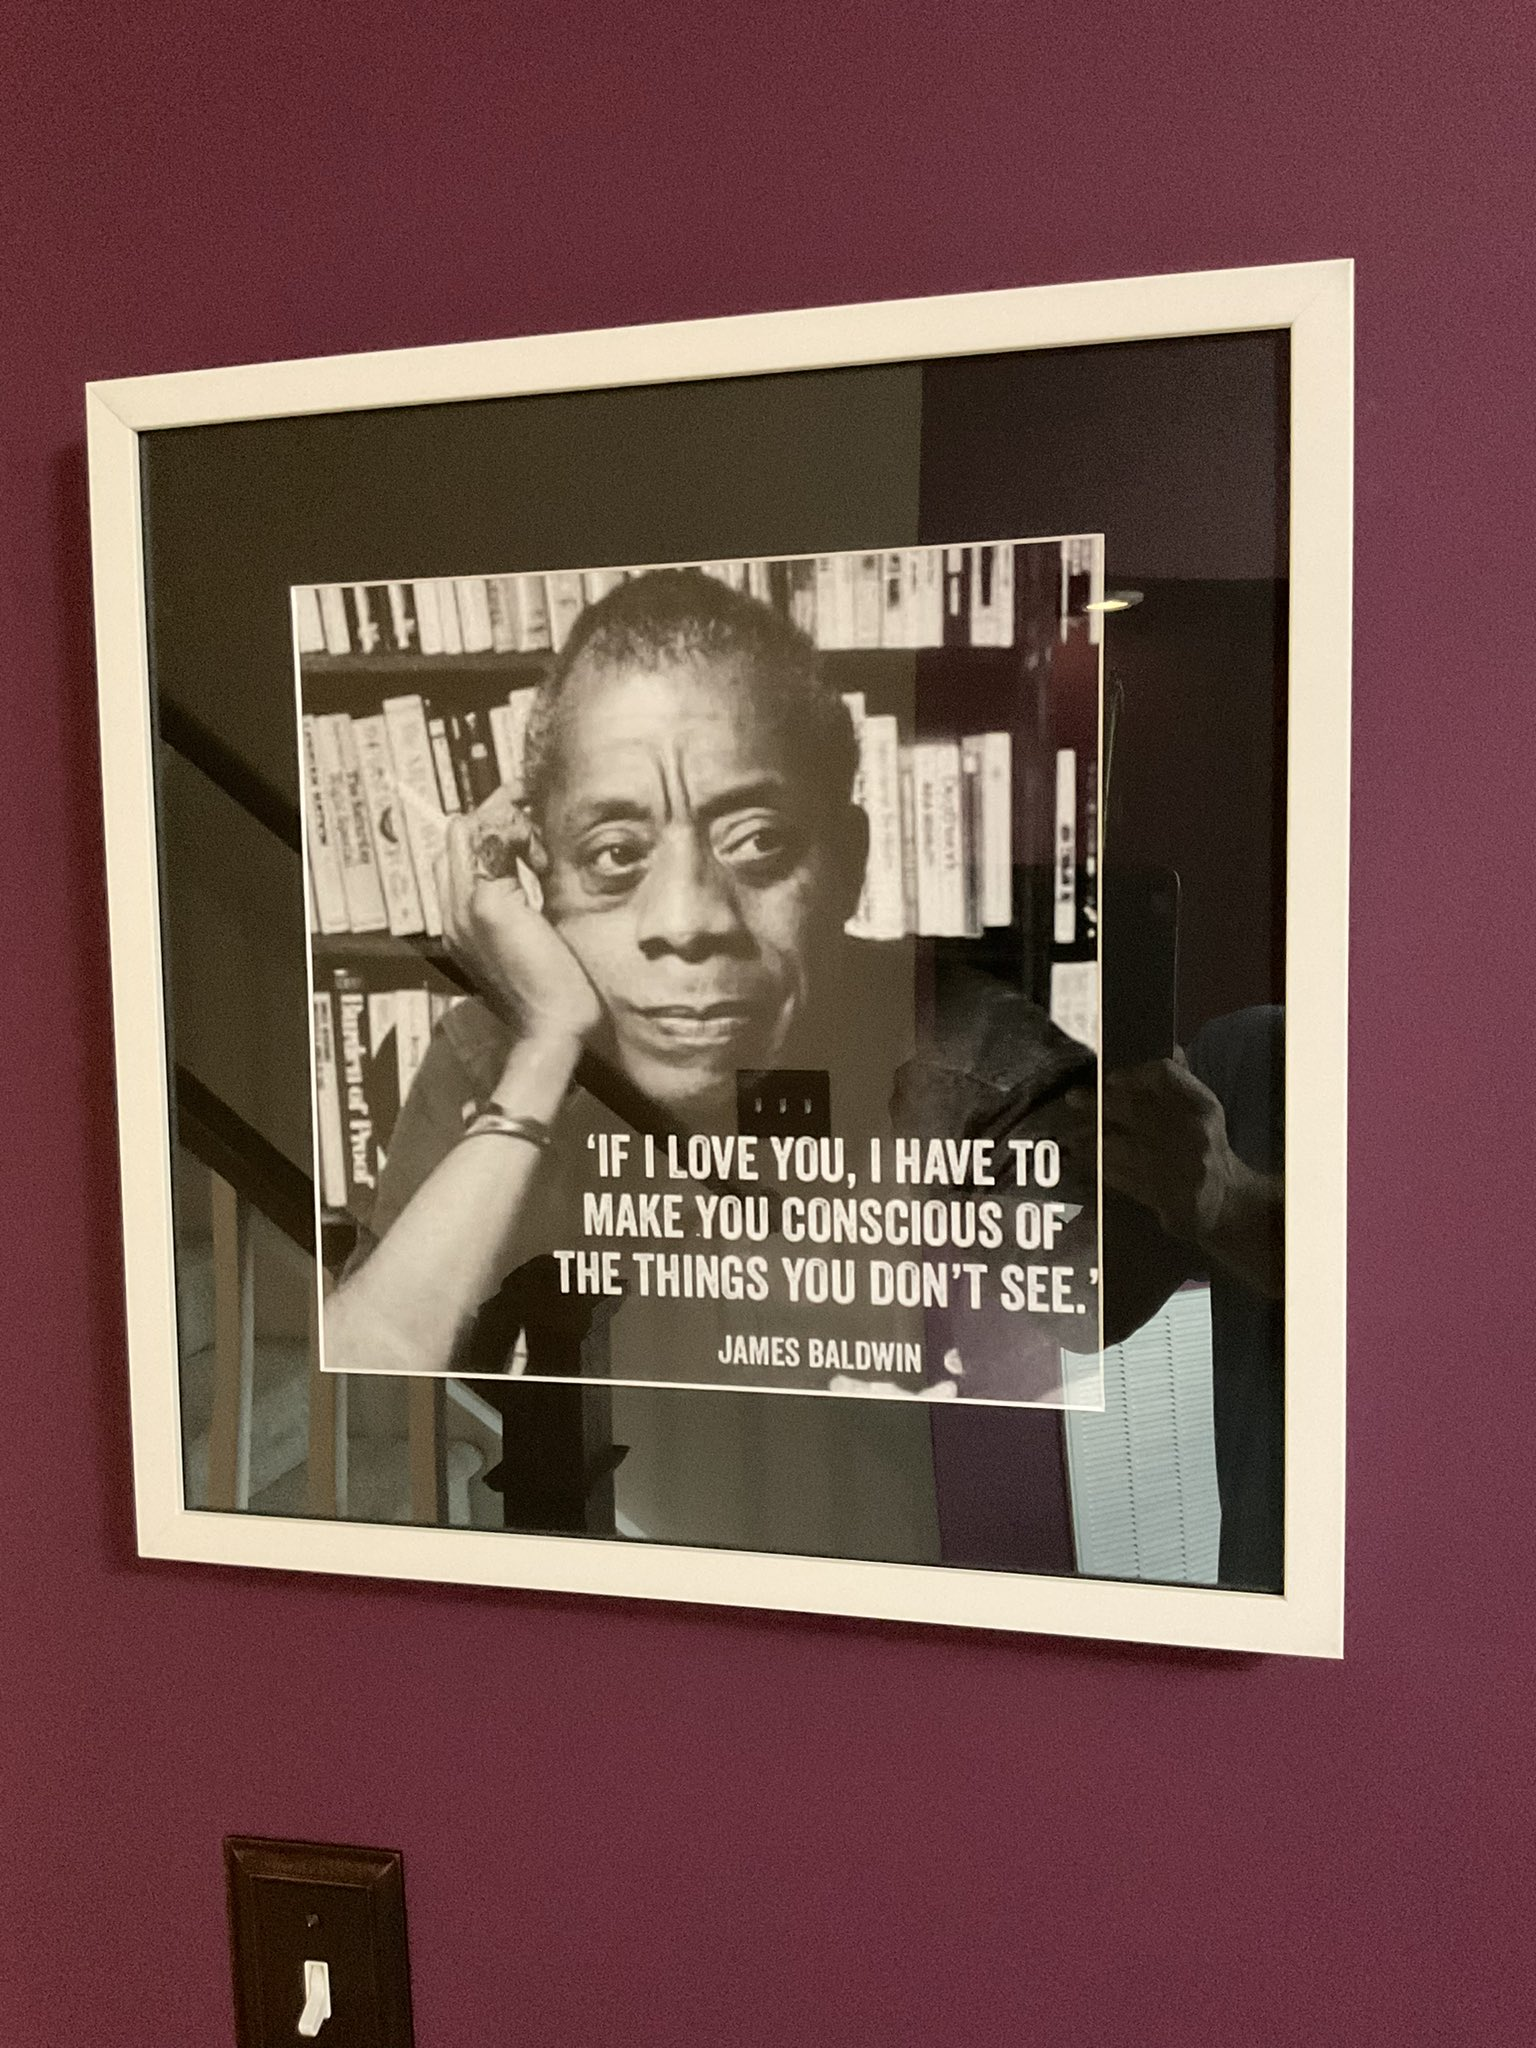 If I love you, I have to make you consious of the things you don't see- James Baldwin. [1536×2048]